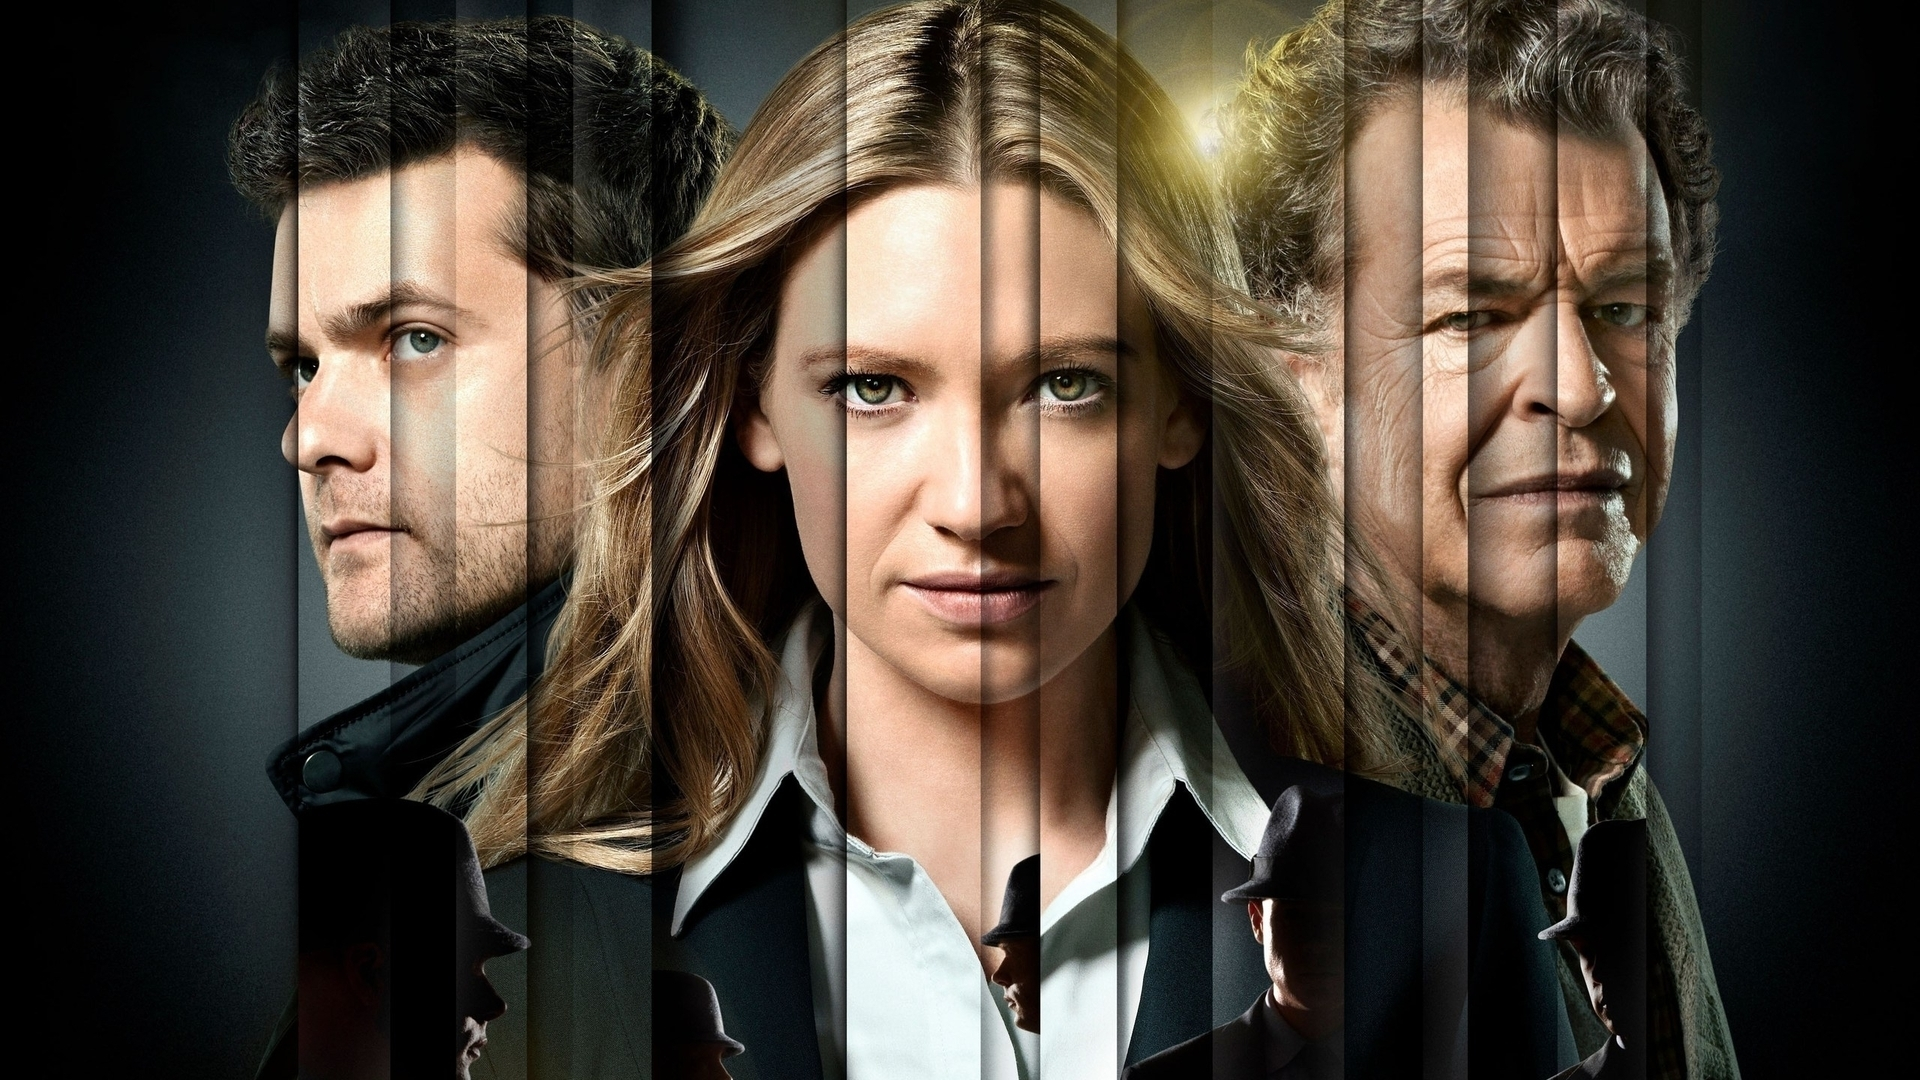 fringe-why-the-fourth-season-actually-mattered-and-what-exactly-rewriting-time-means-anyway